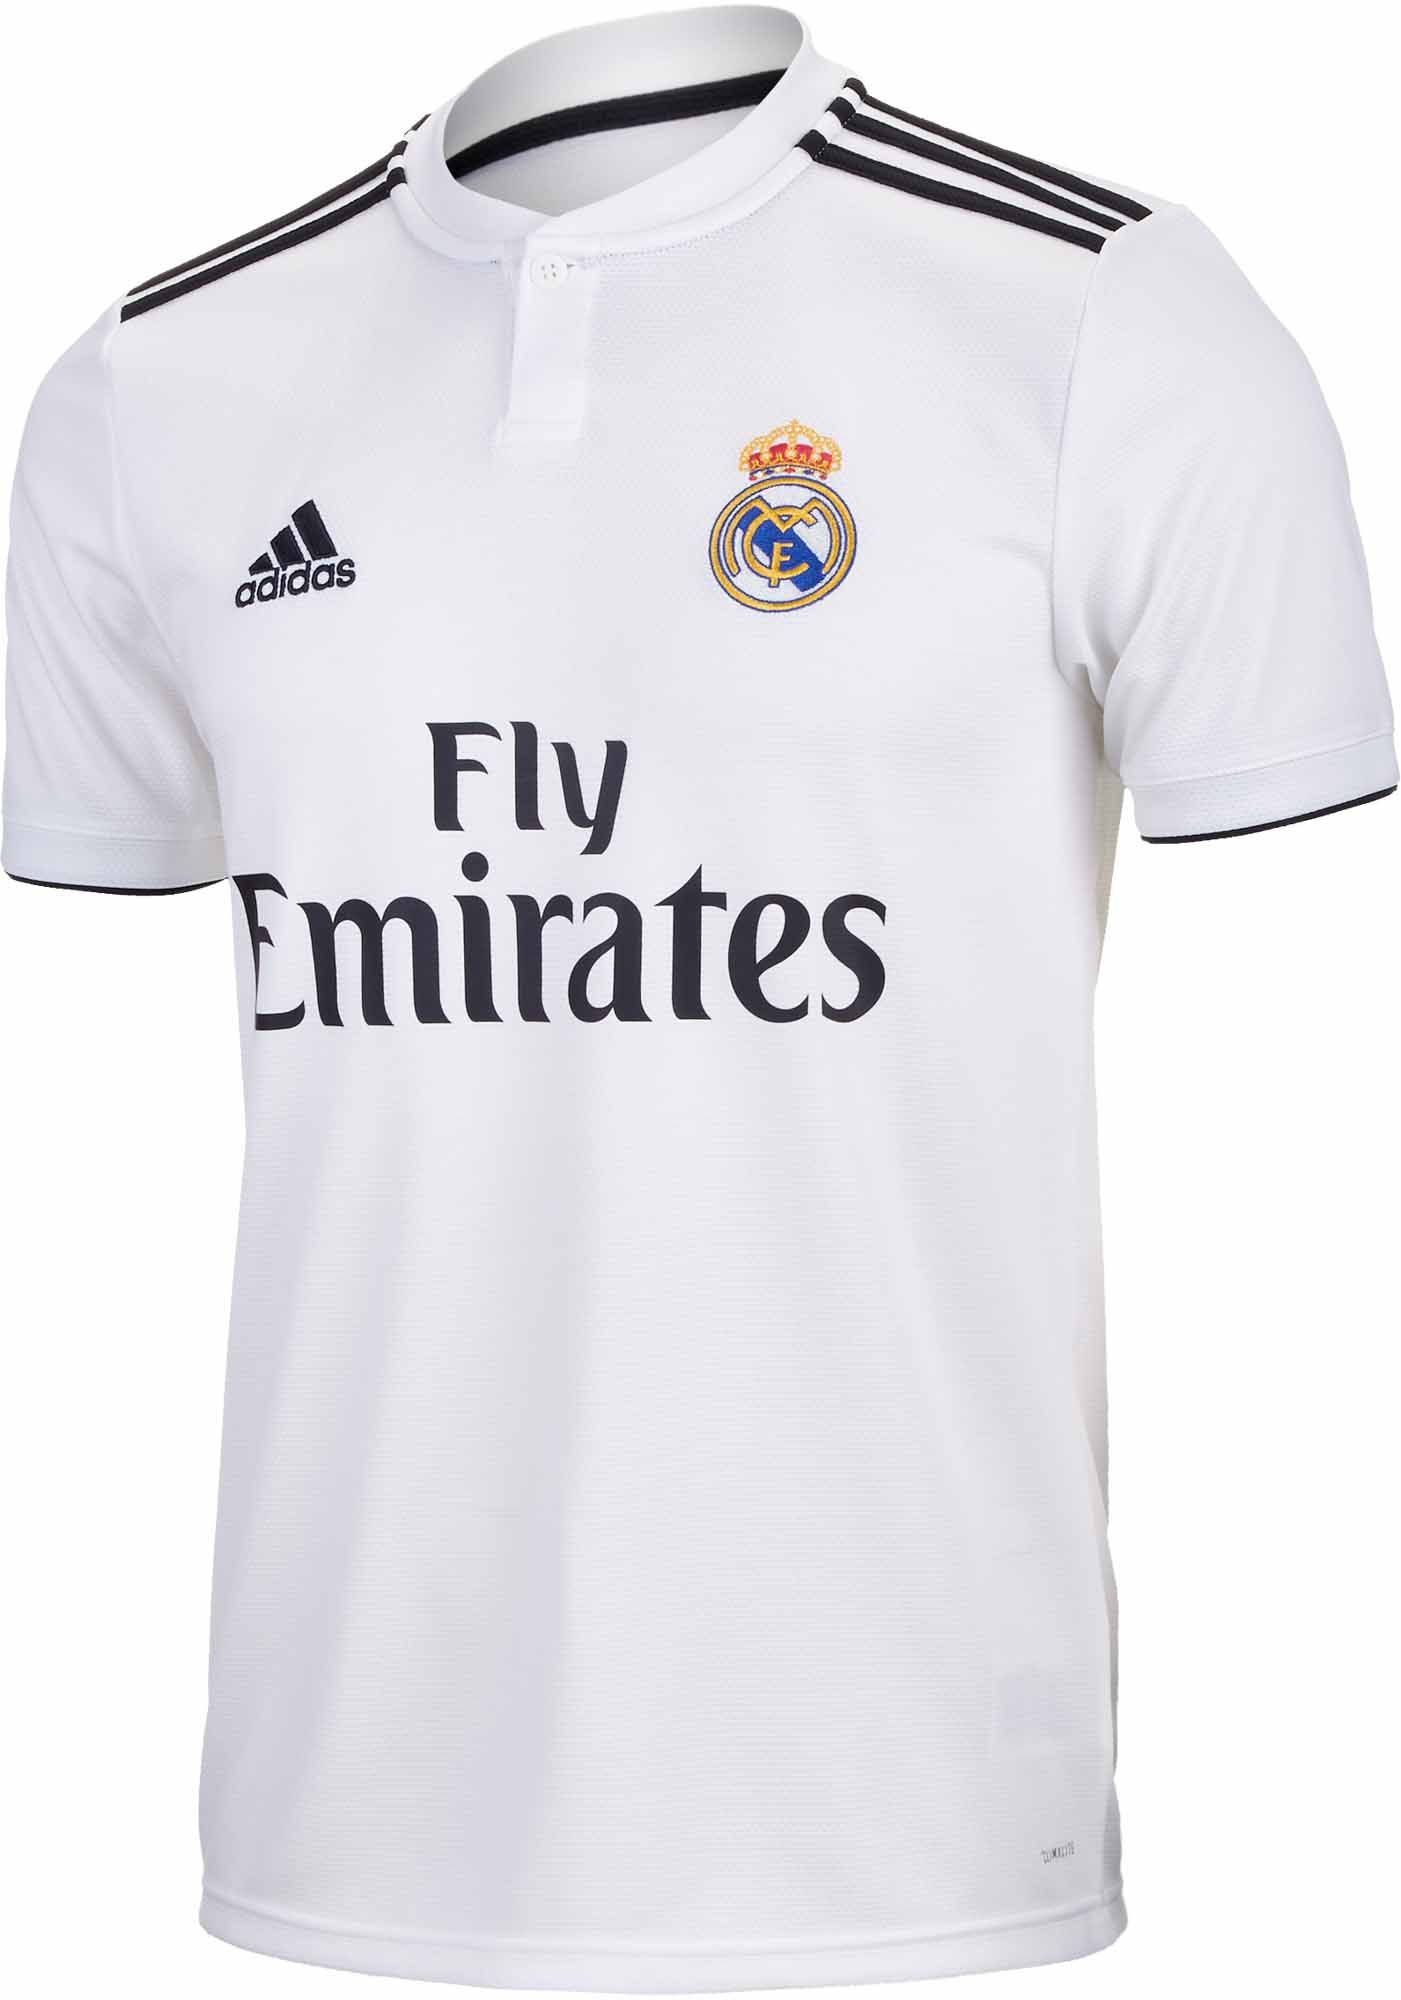 2018 19 adidas Real Madrid Home Jersey. Buy this at soccerpro.com 352e4530b